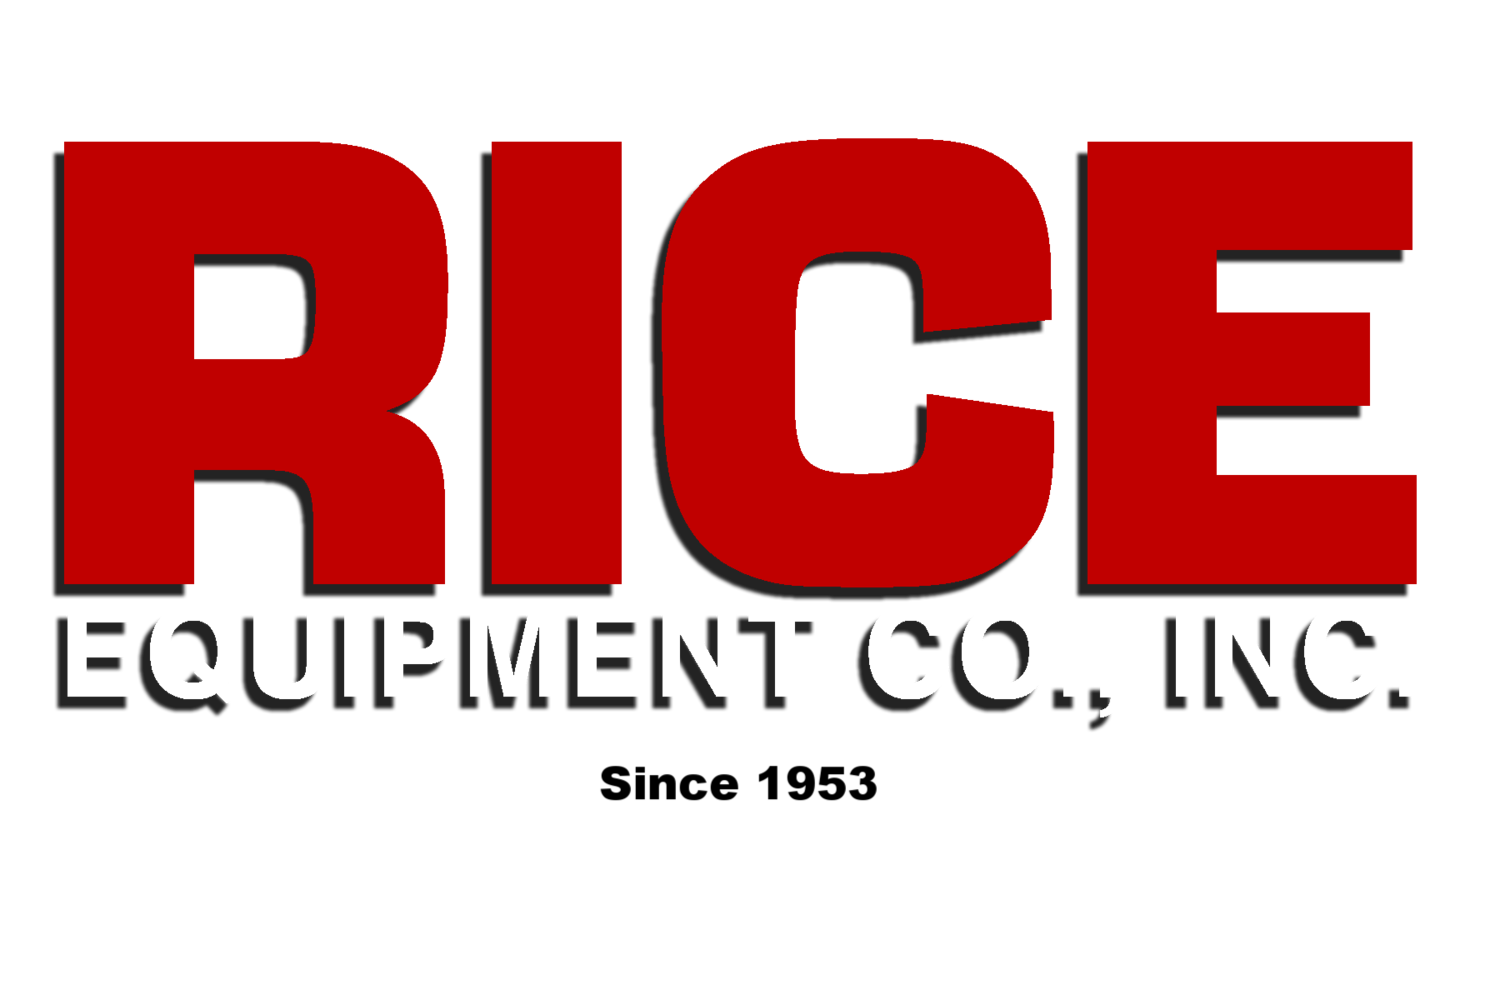 Rice Equipment Co., Loading Dock & Door Service